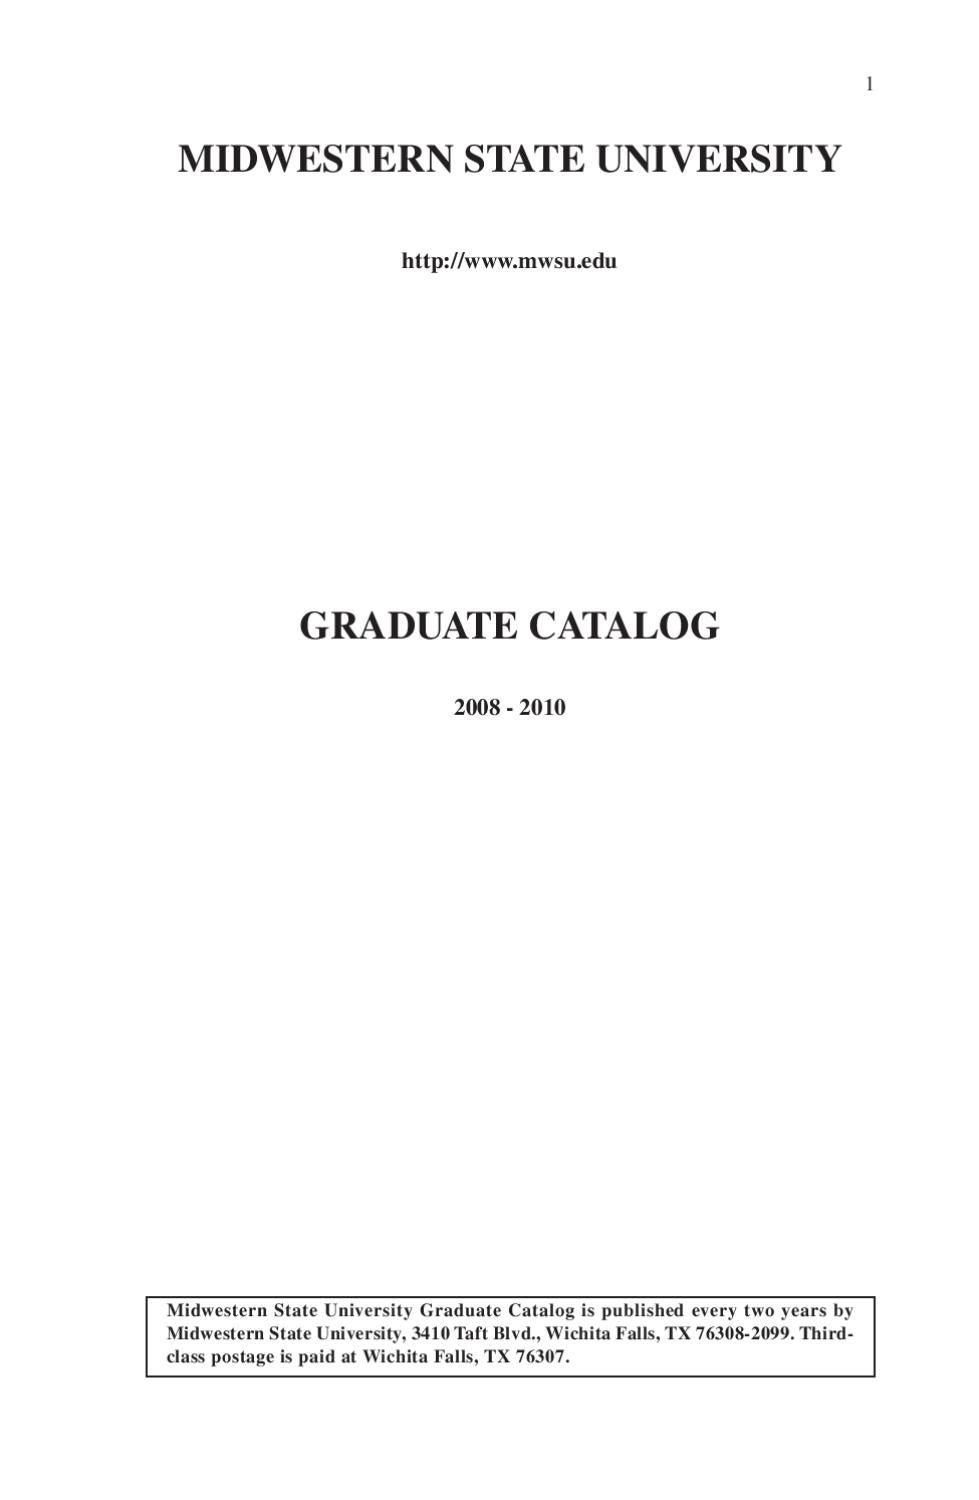 2008-2010 Graduate Catalog by Midwestern State University